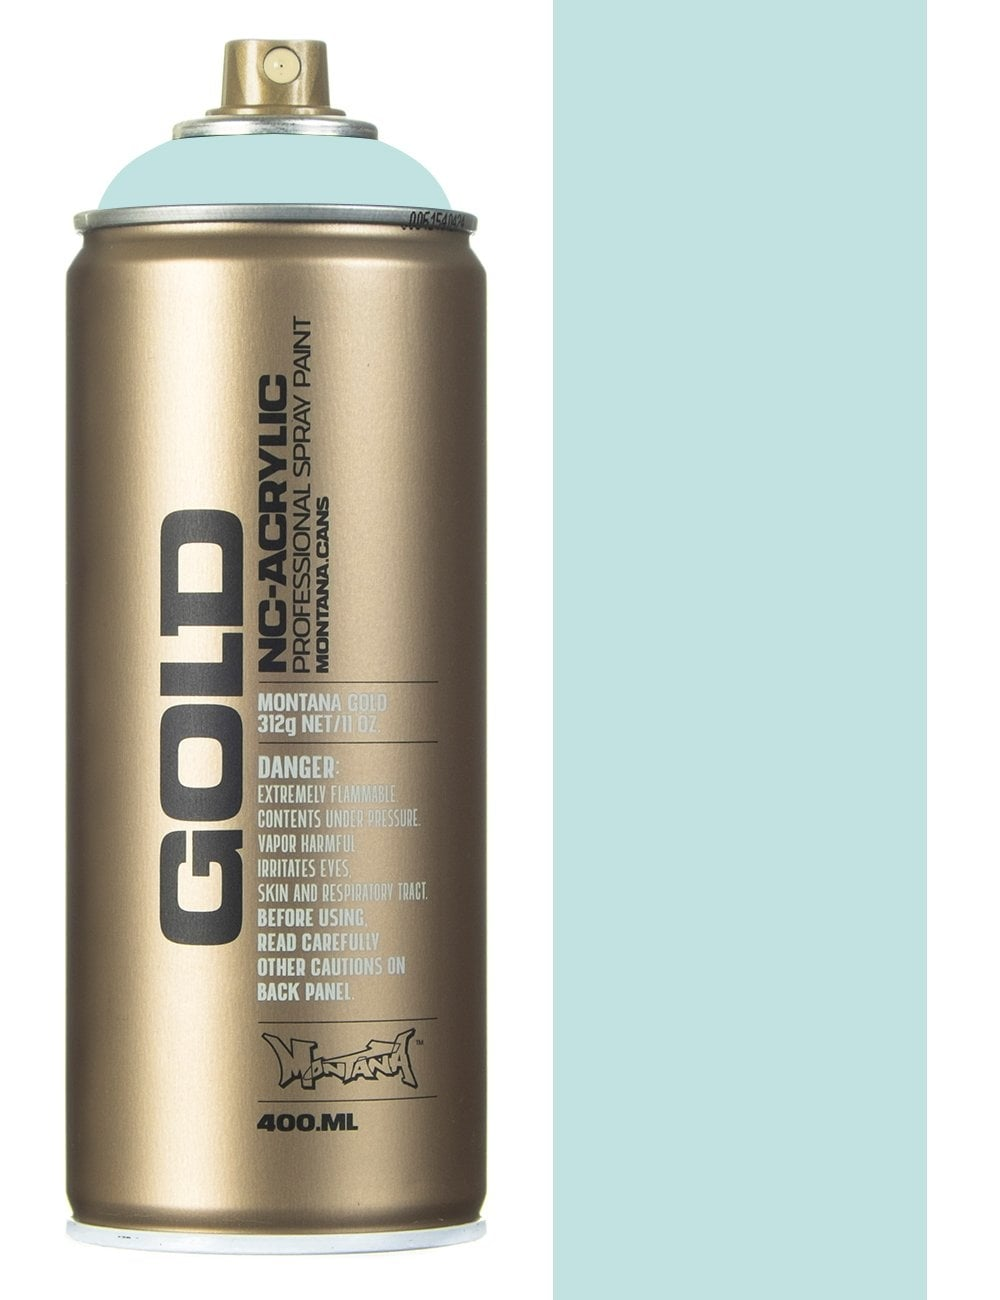 Montana Gold Can2 Cool Candy Spray Paint 400ml Spray Paint Supplies From Fat Buddha Store Uk